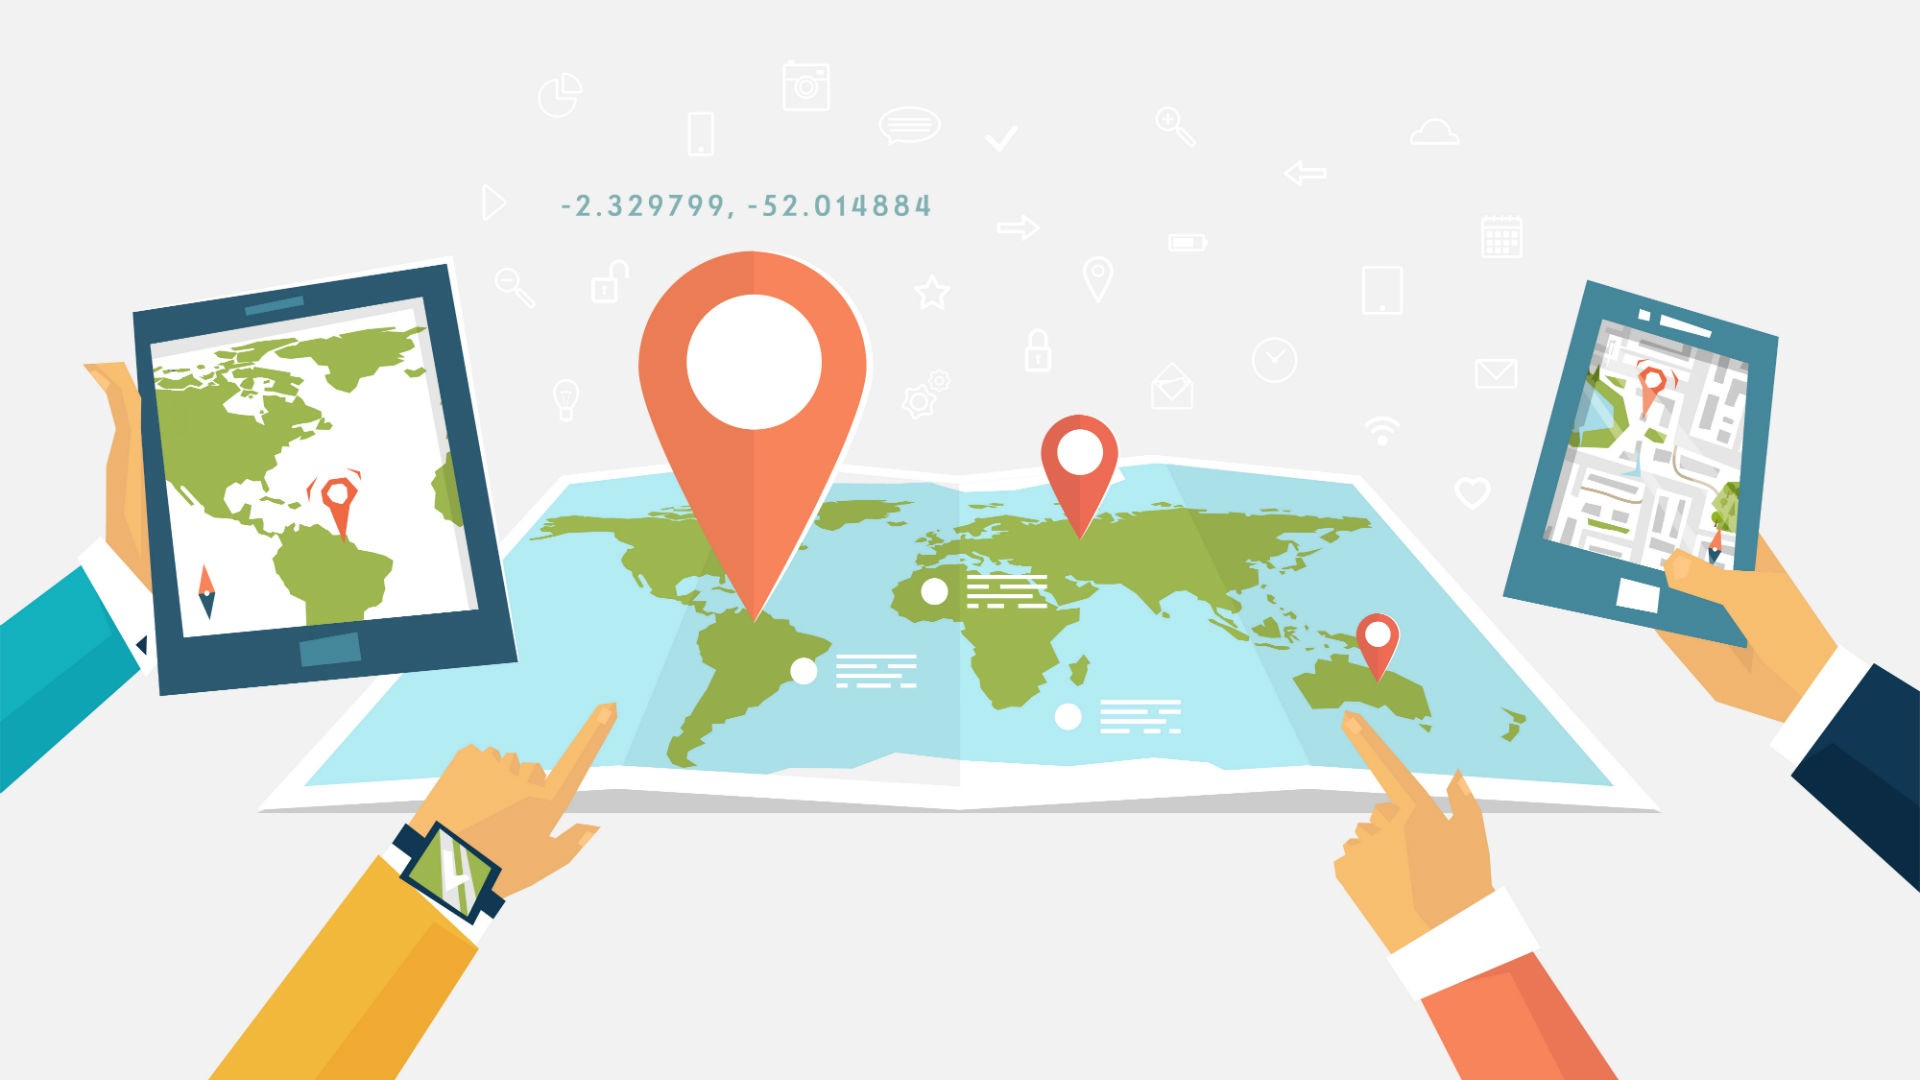 Guide To Getting Location in Android(Latitude and Longitude